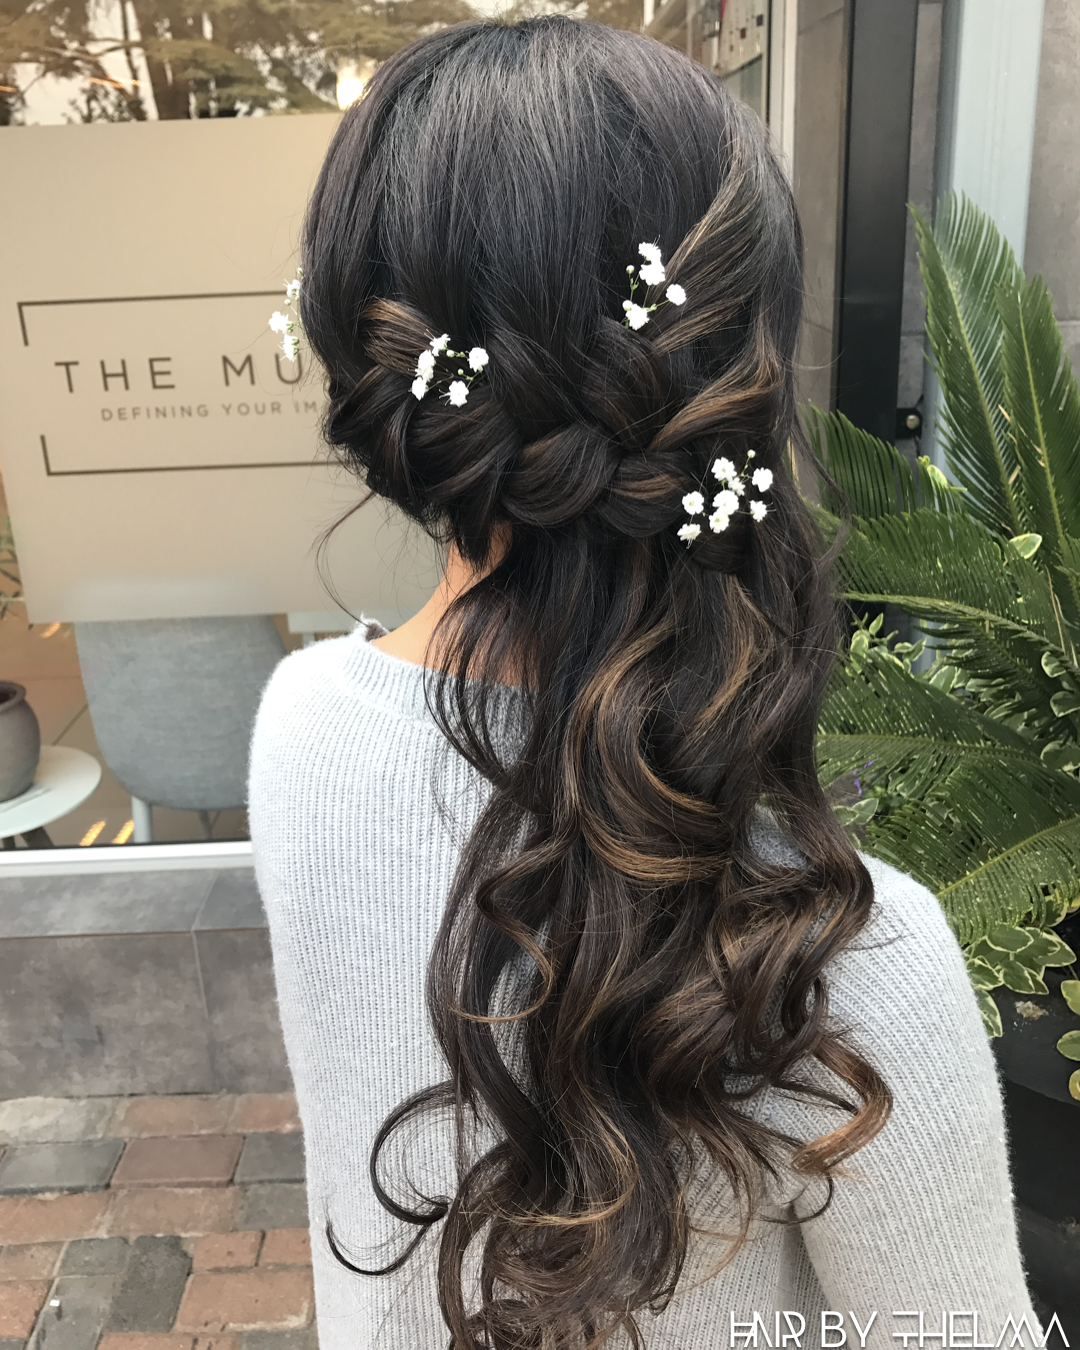 Bridesmaid Hairstyles Side Braided Decorated With Babies Breath Flowers Event Hair Brides